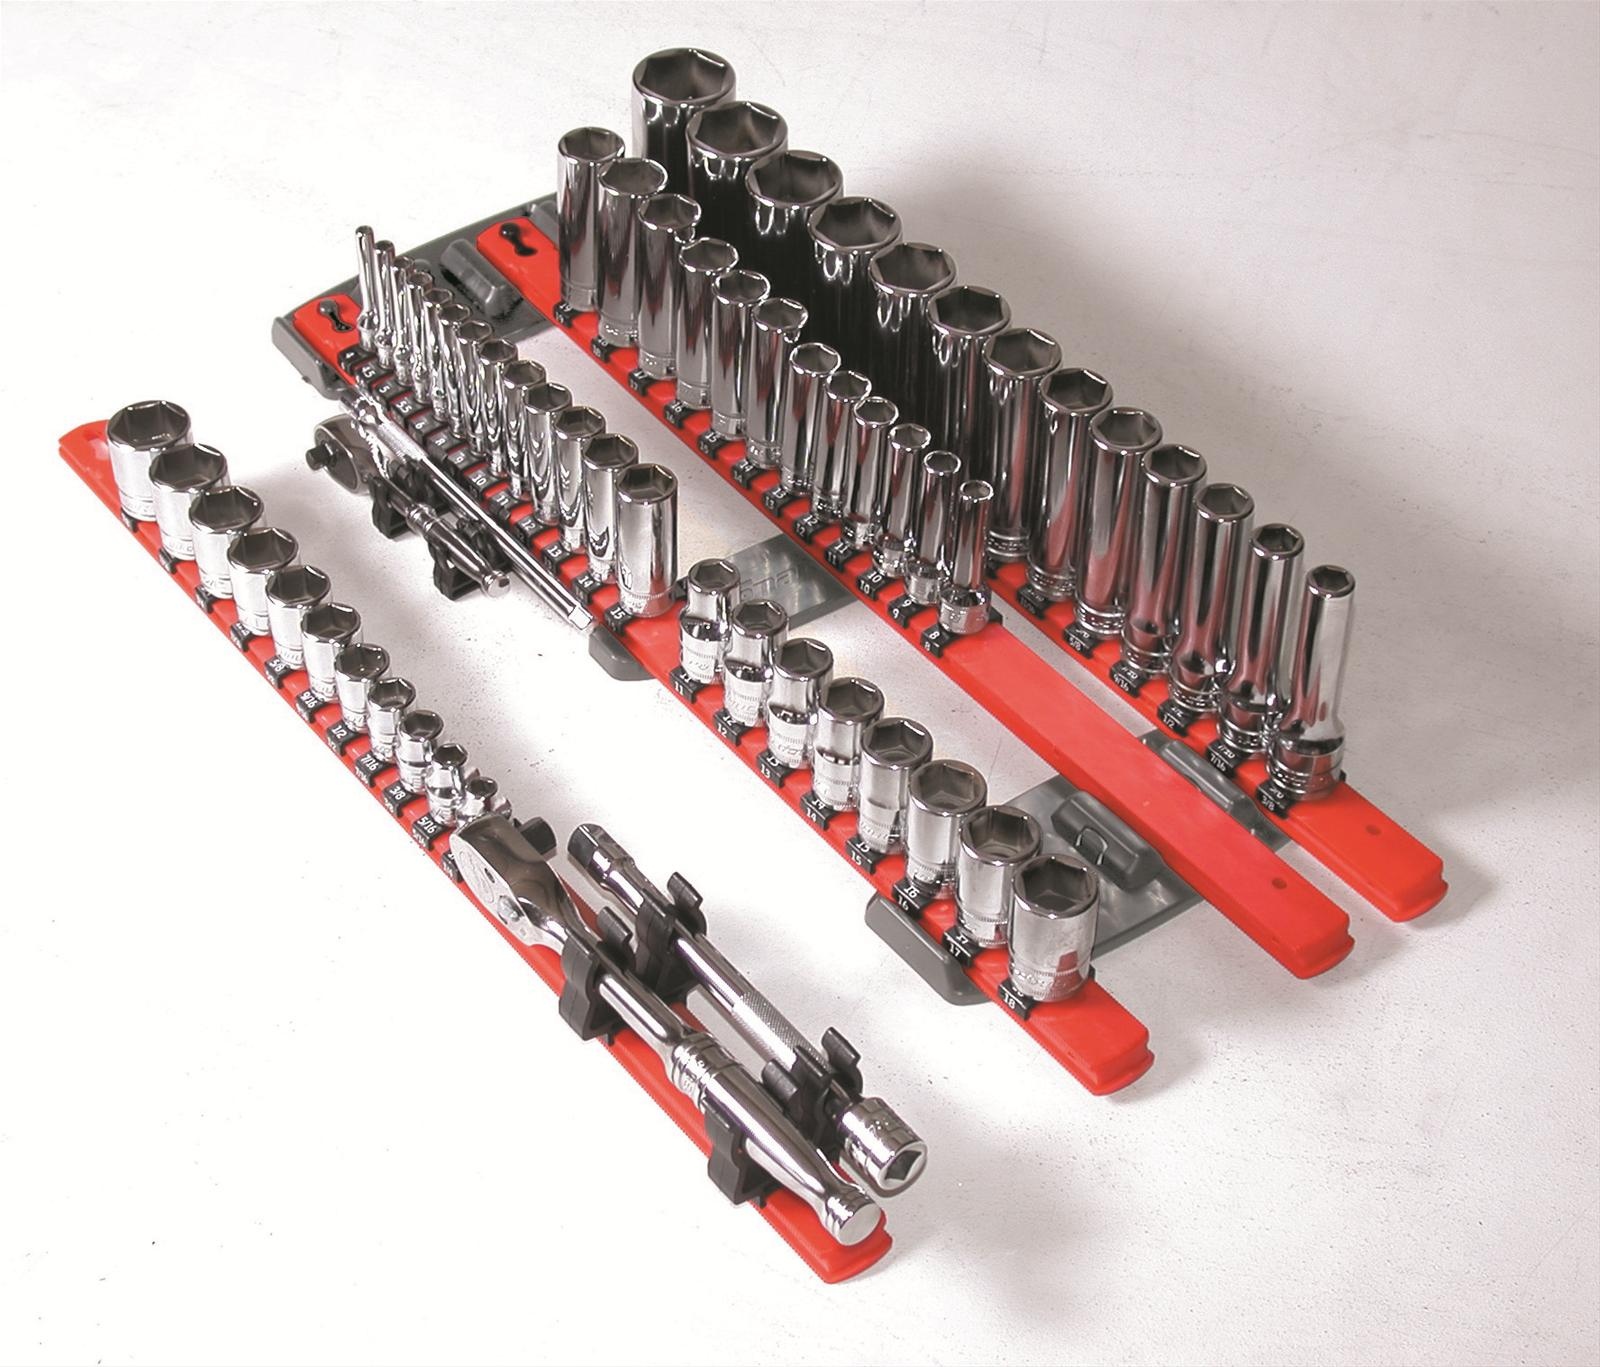 Tool Organizer Guide: 15 Tool Organizers for Under 50 Bucks - OnAllCylinders